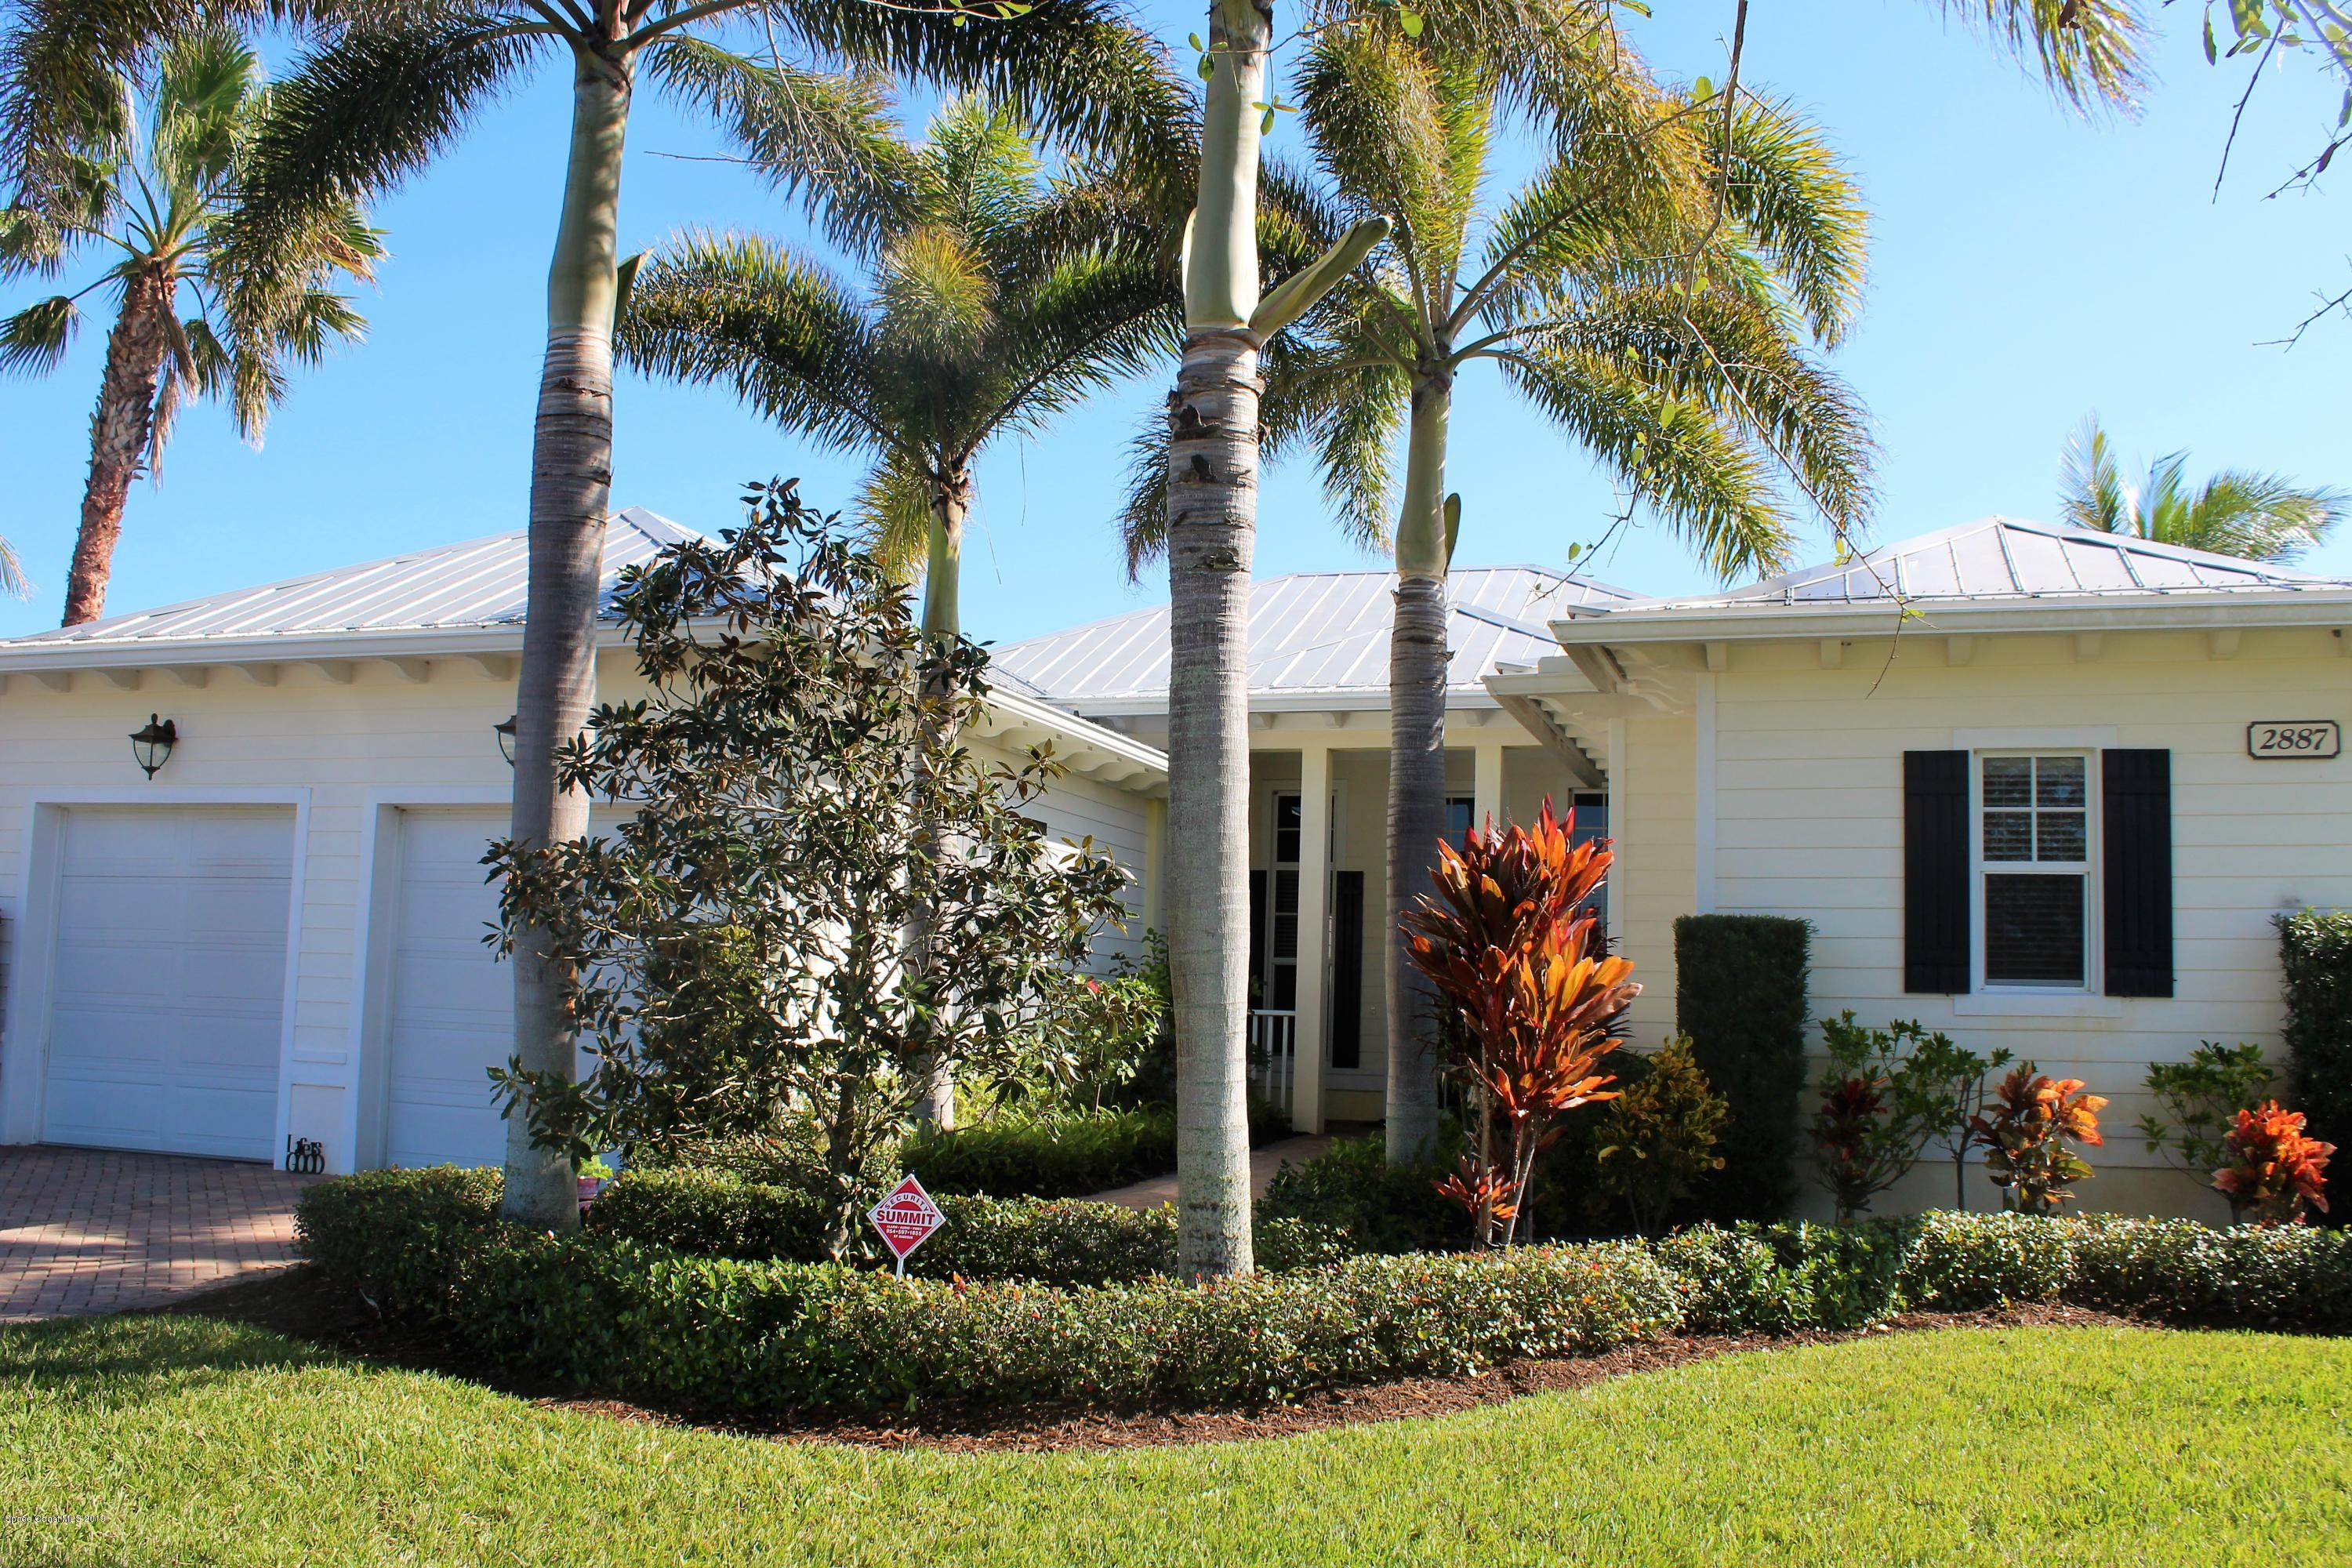 Single Family Homes for Sale at 2887 St Barts Vero Beach, Florida 32967 United States